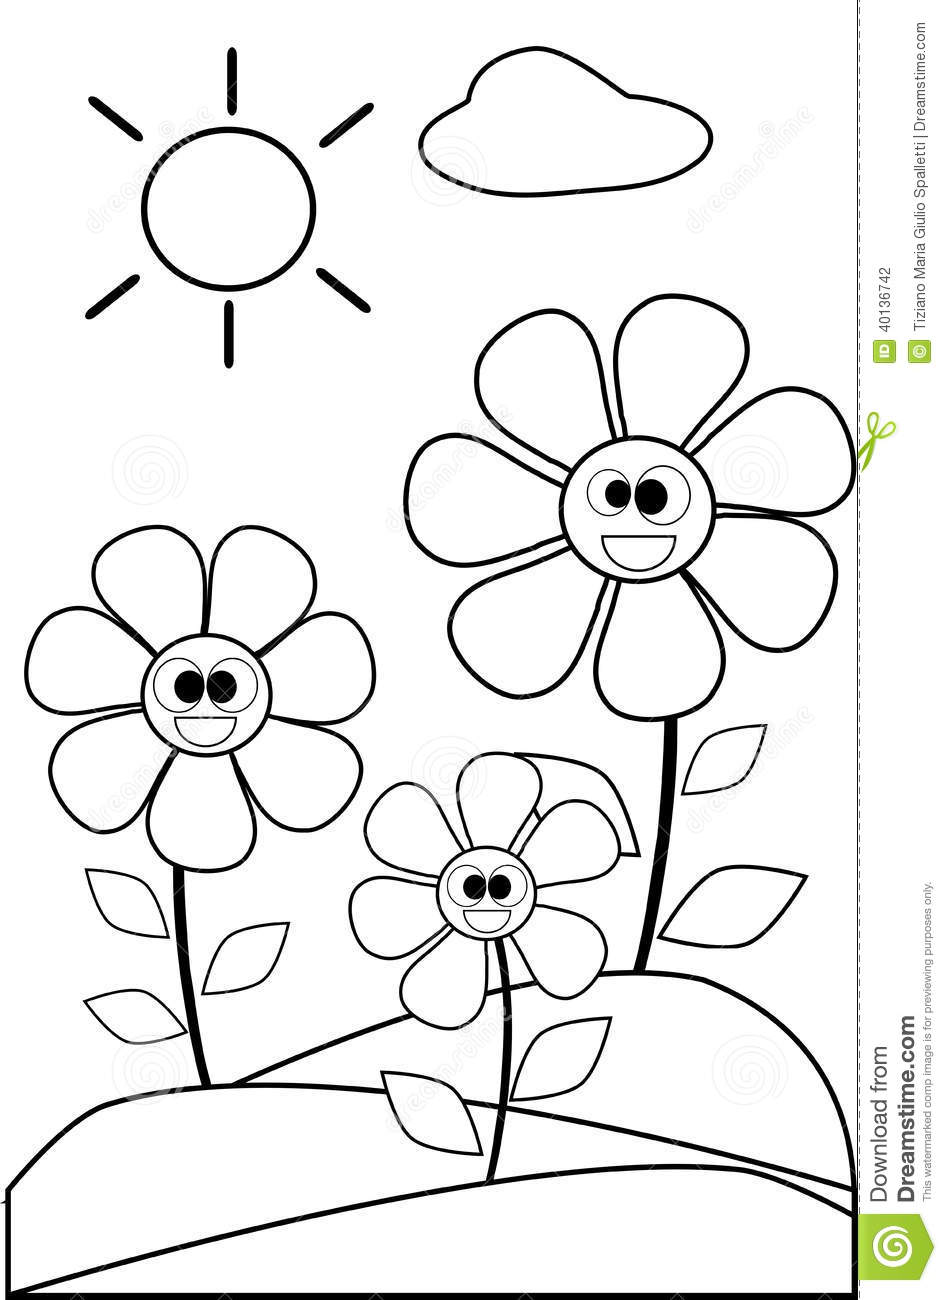 black and white color pages royalty free rf clipart illustration of a coloring page white black color pages and